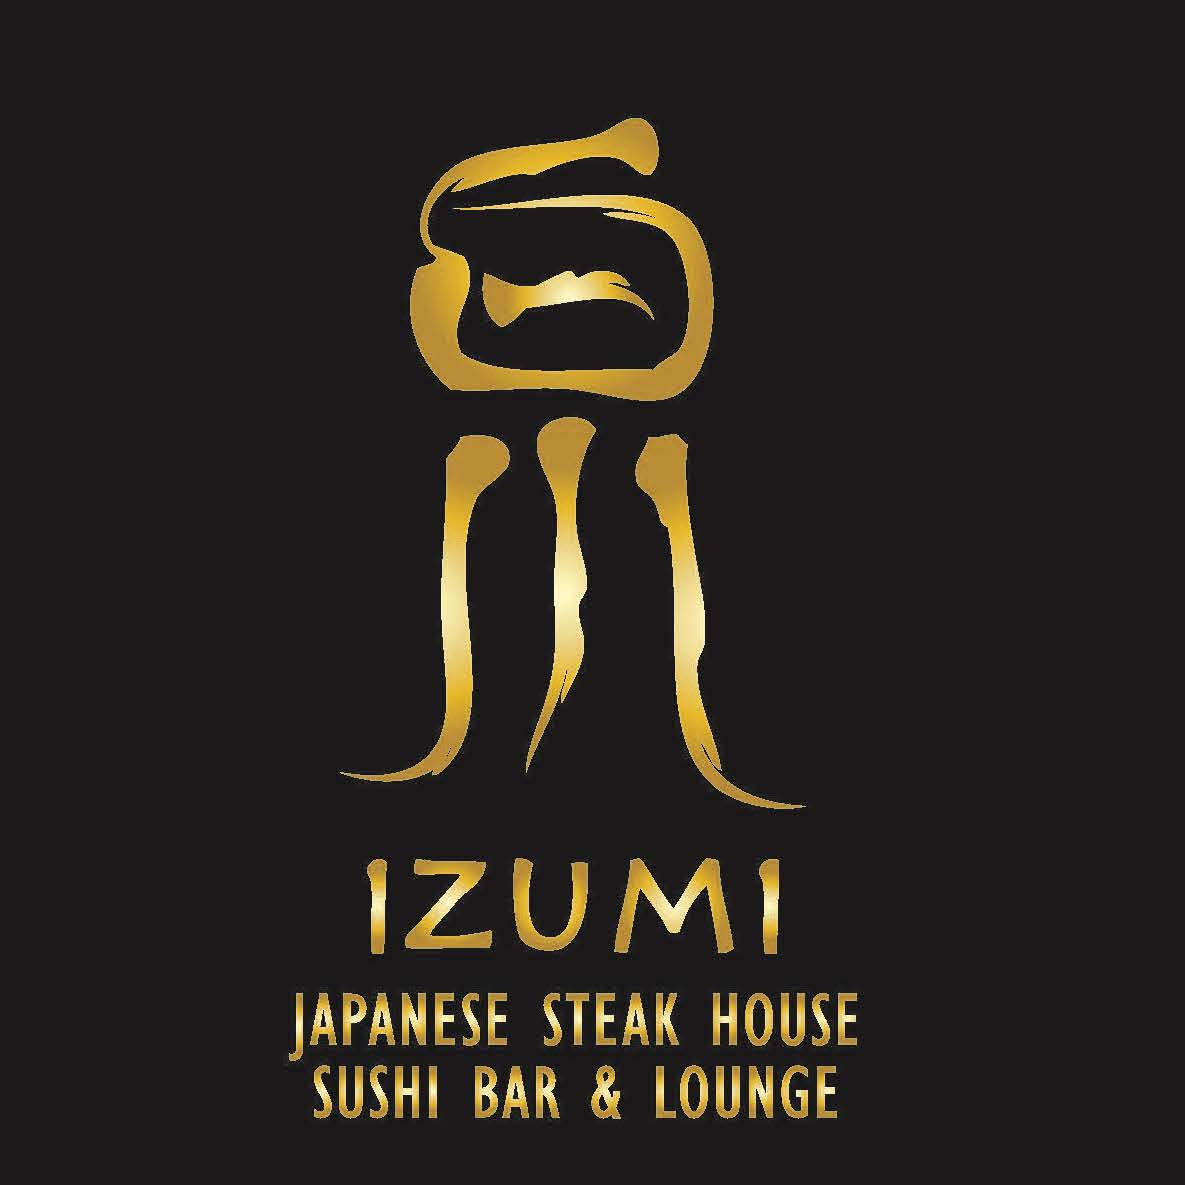 Izumi Steak House Catering - Windsor Locks